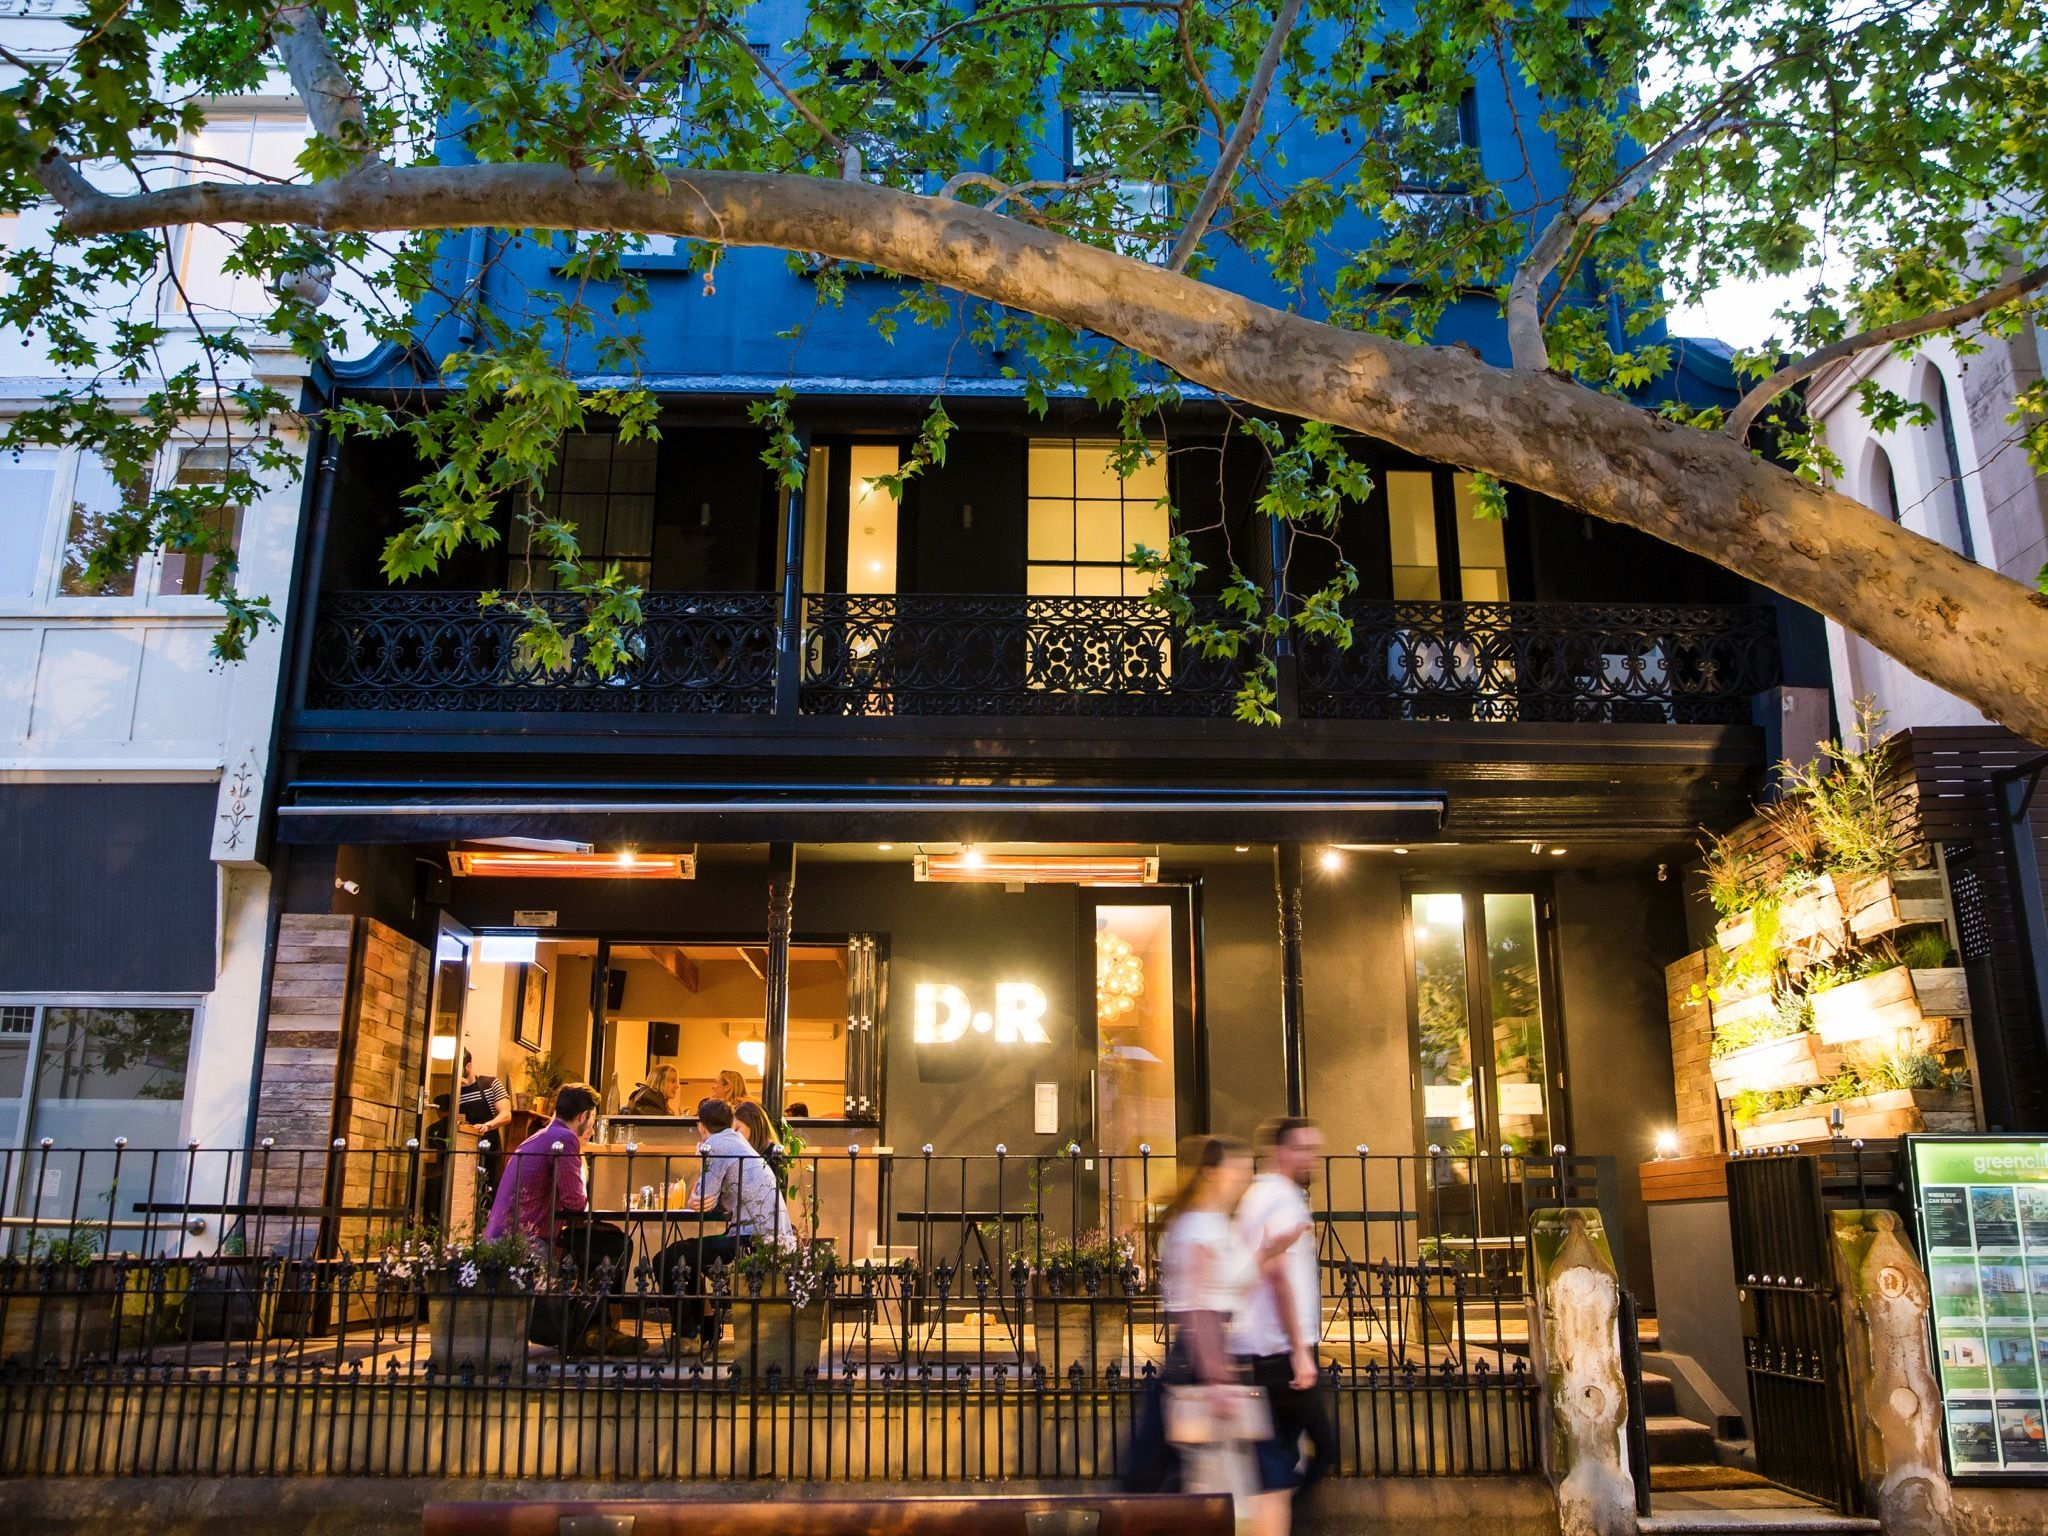 The 15 best bars in Surry Hills | Surry hills, Cool bars ...